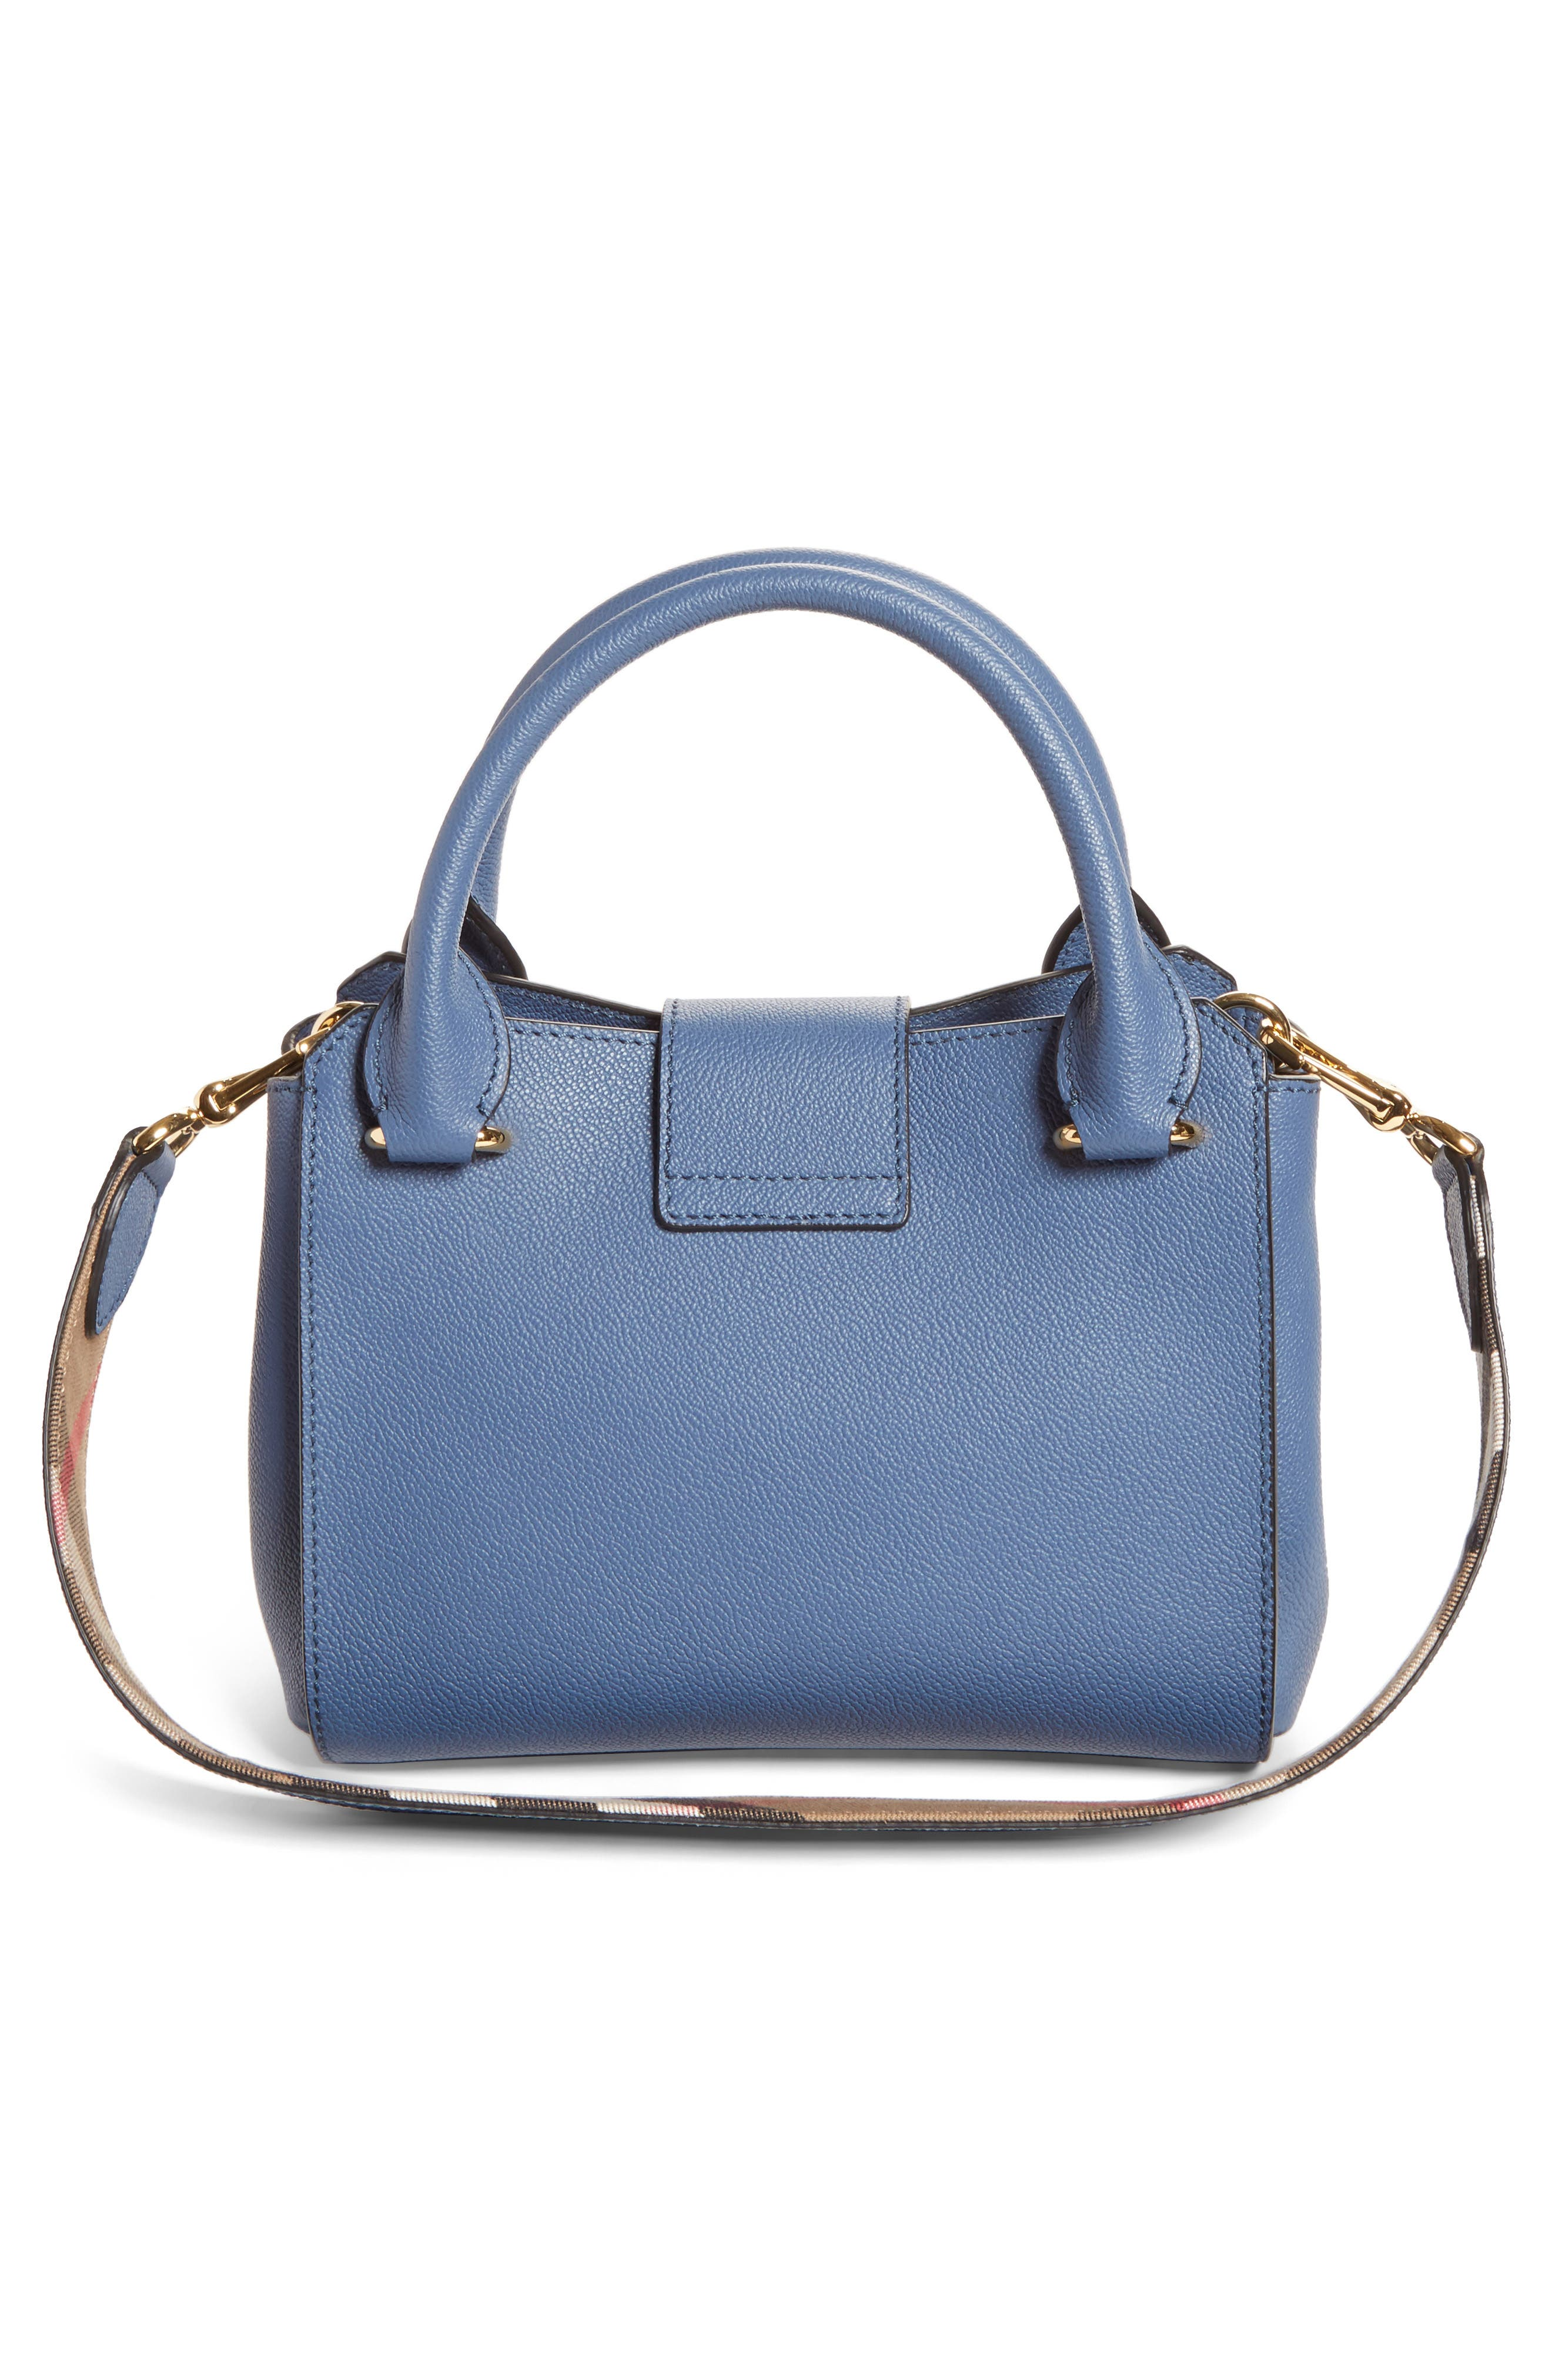 Alternate Image 3  - Burberry Small Buckle Leather Satchel